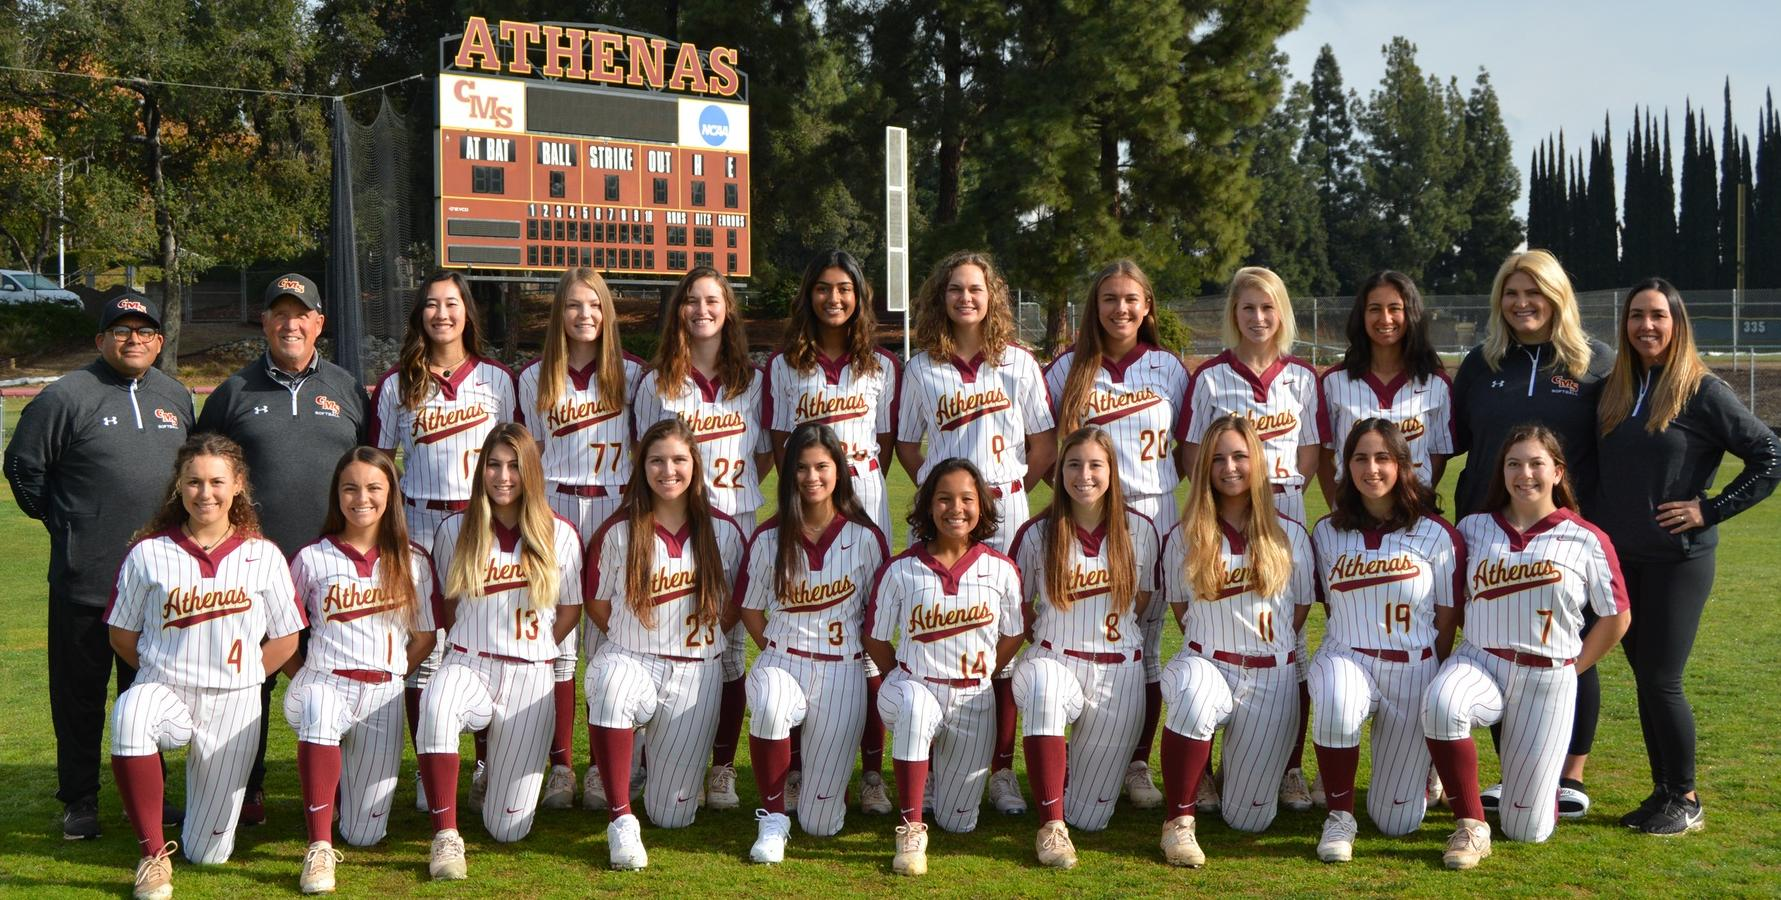 CMS Softball Favored to Win 2020 SCIAC Championship